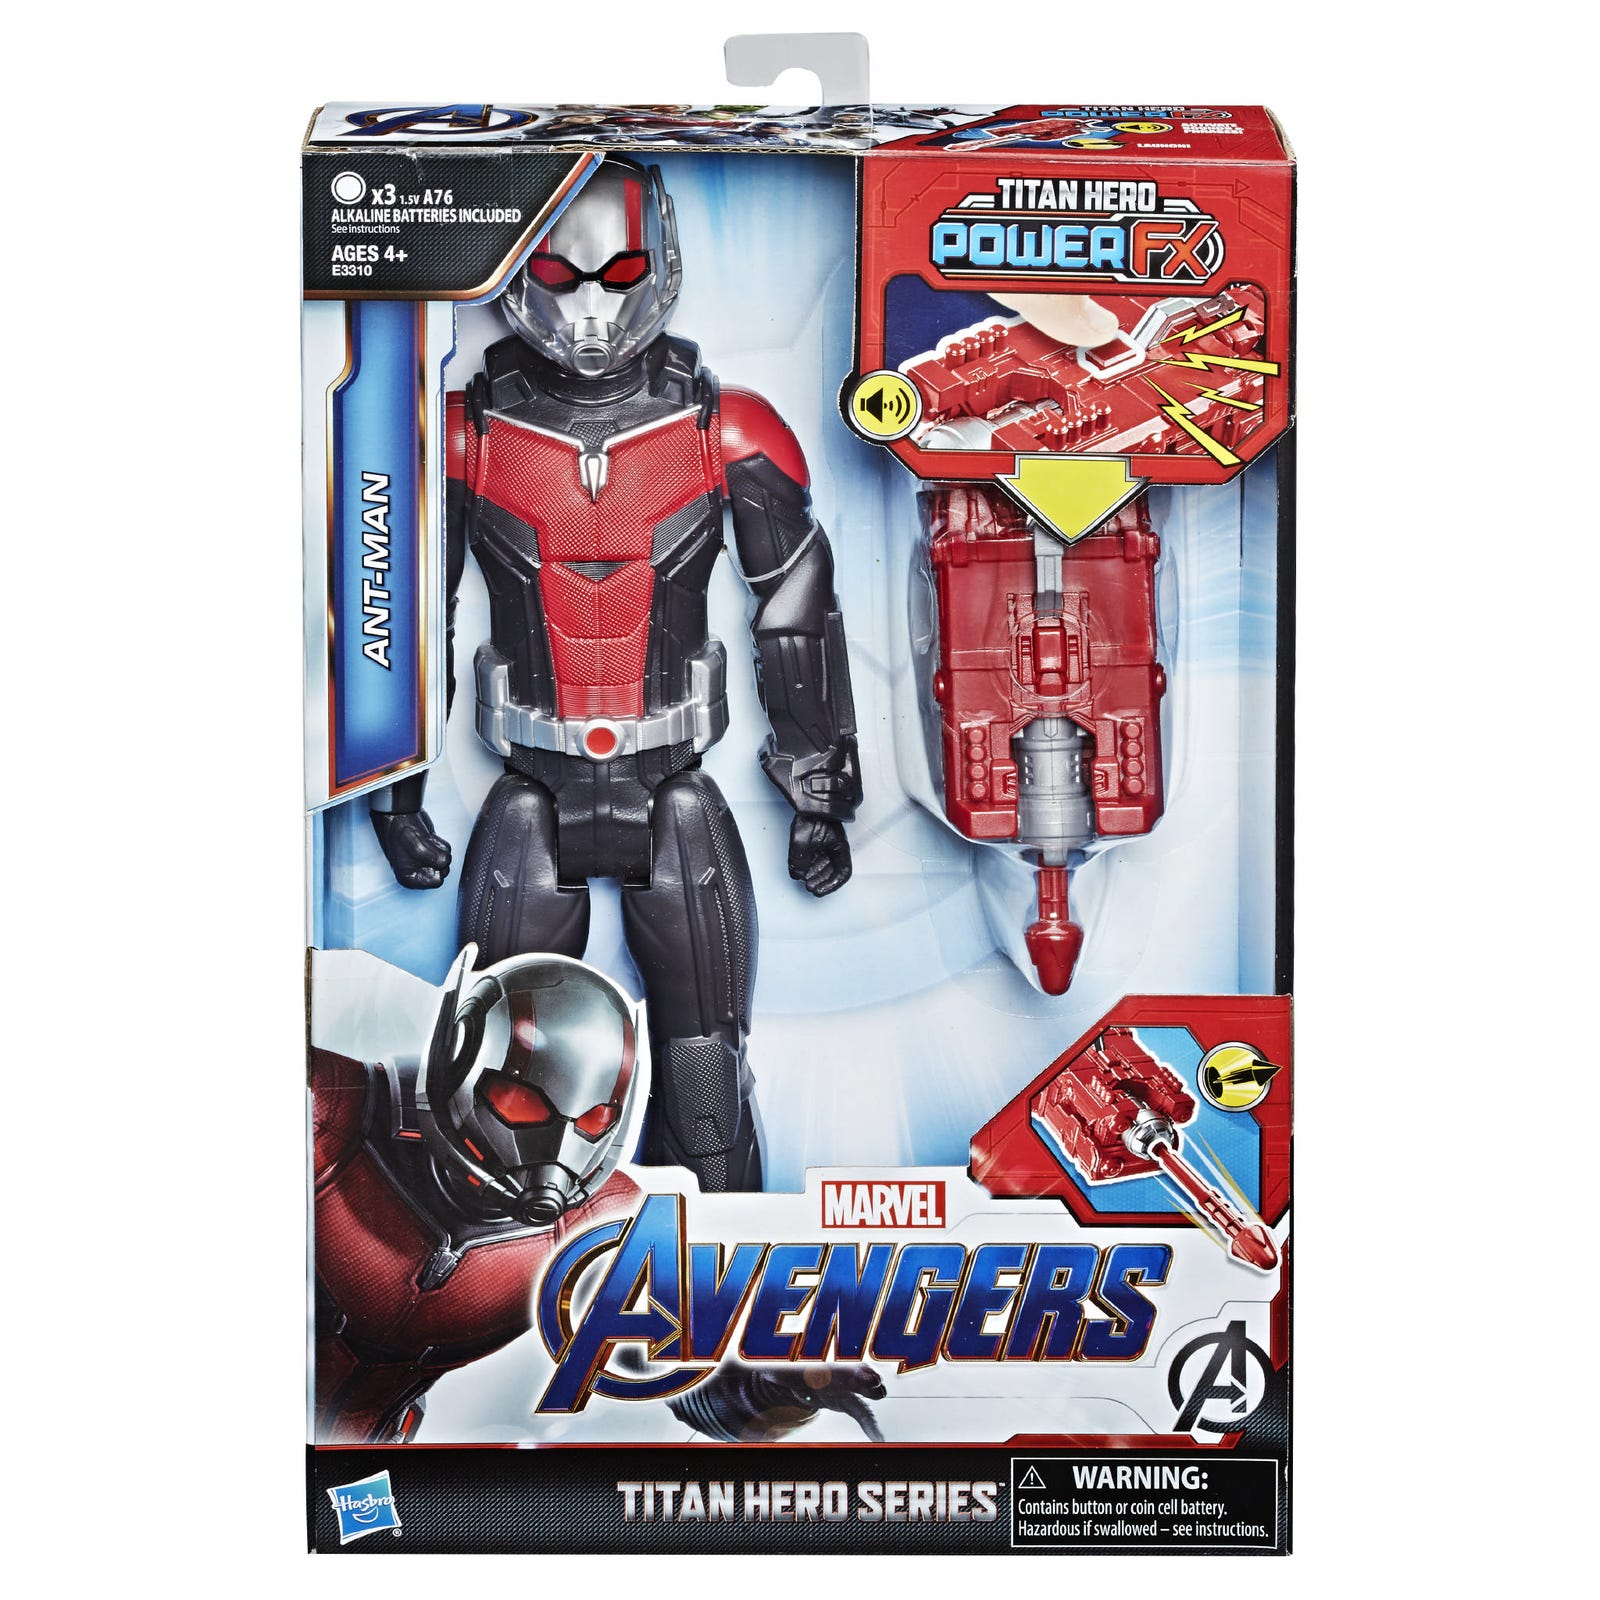 The Titan Hero PowerFX figures all feature projectile-shooting calamities that are almost assuredly not in the film. They can be yours for $25 apiece though.